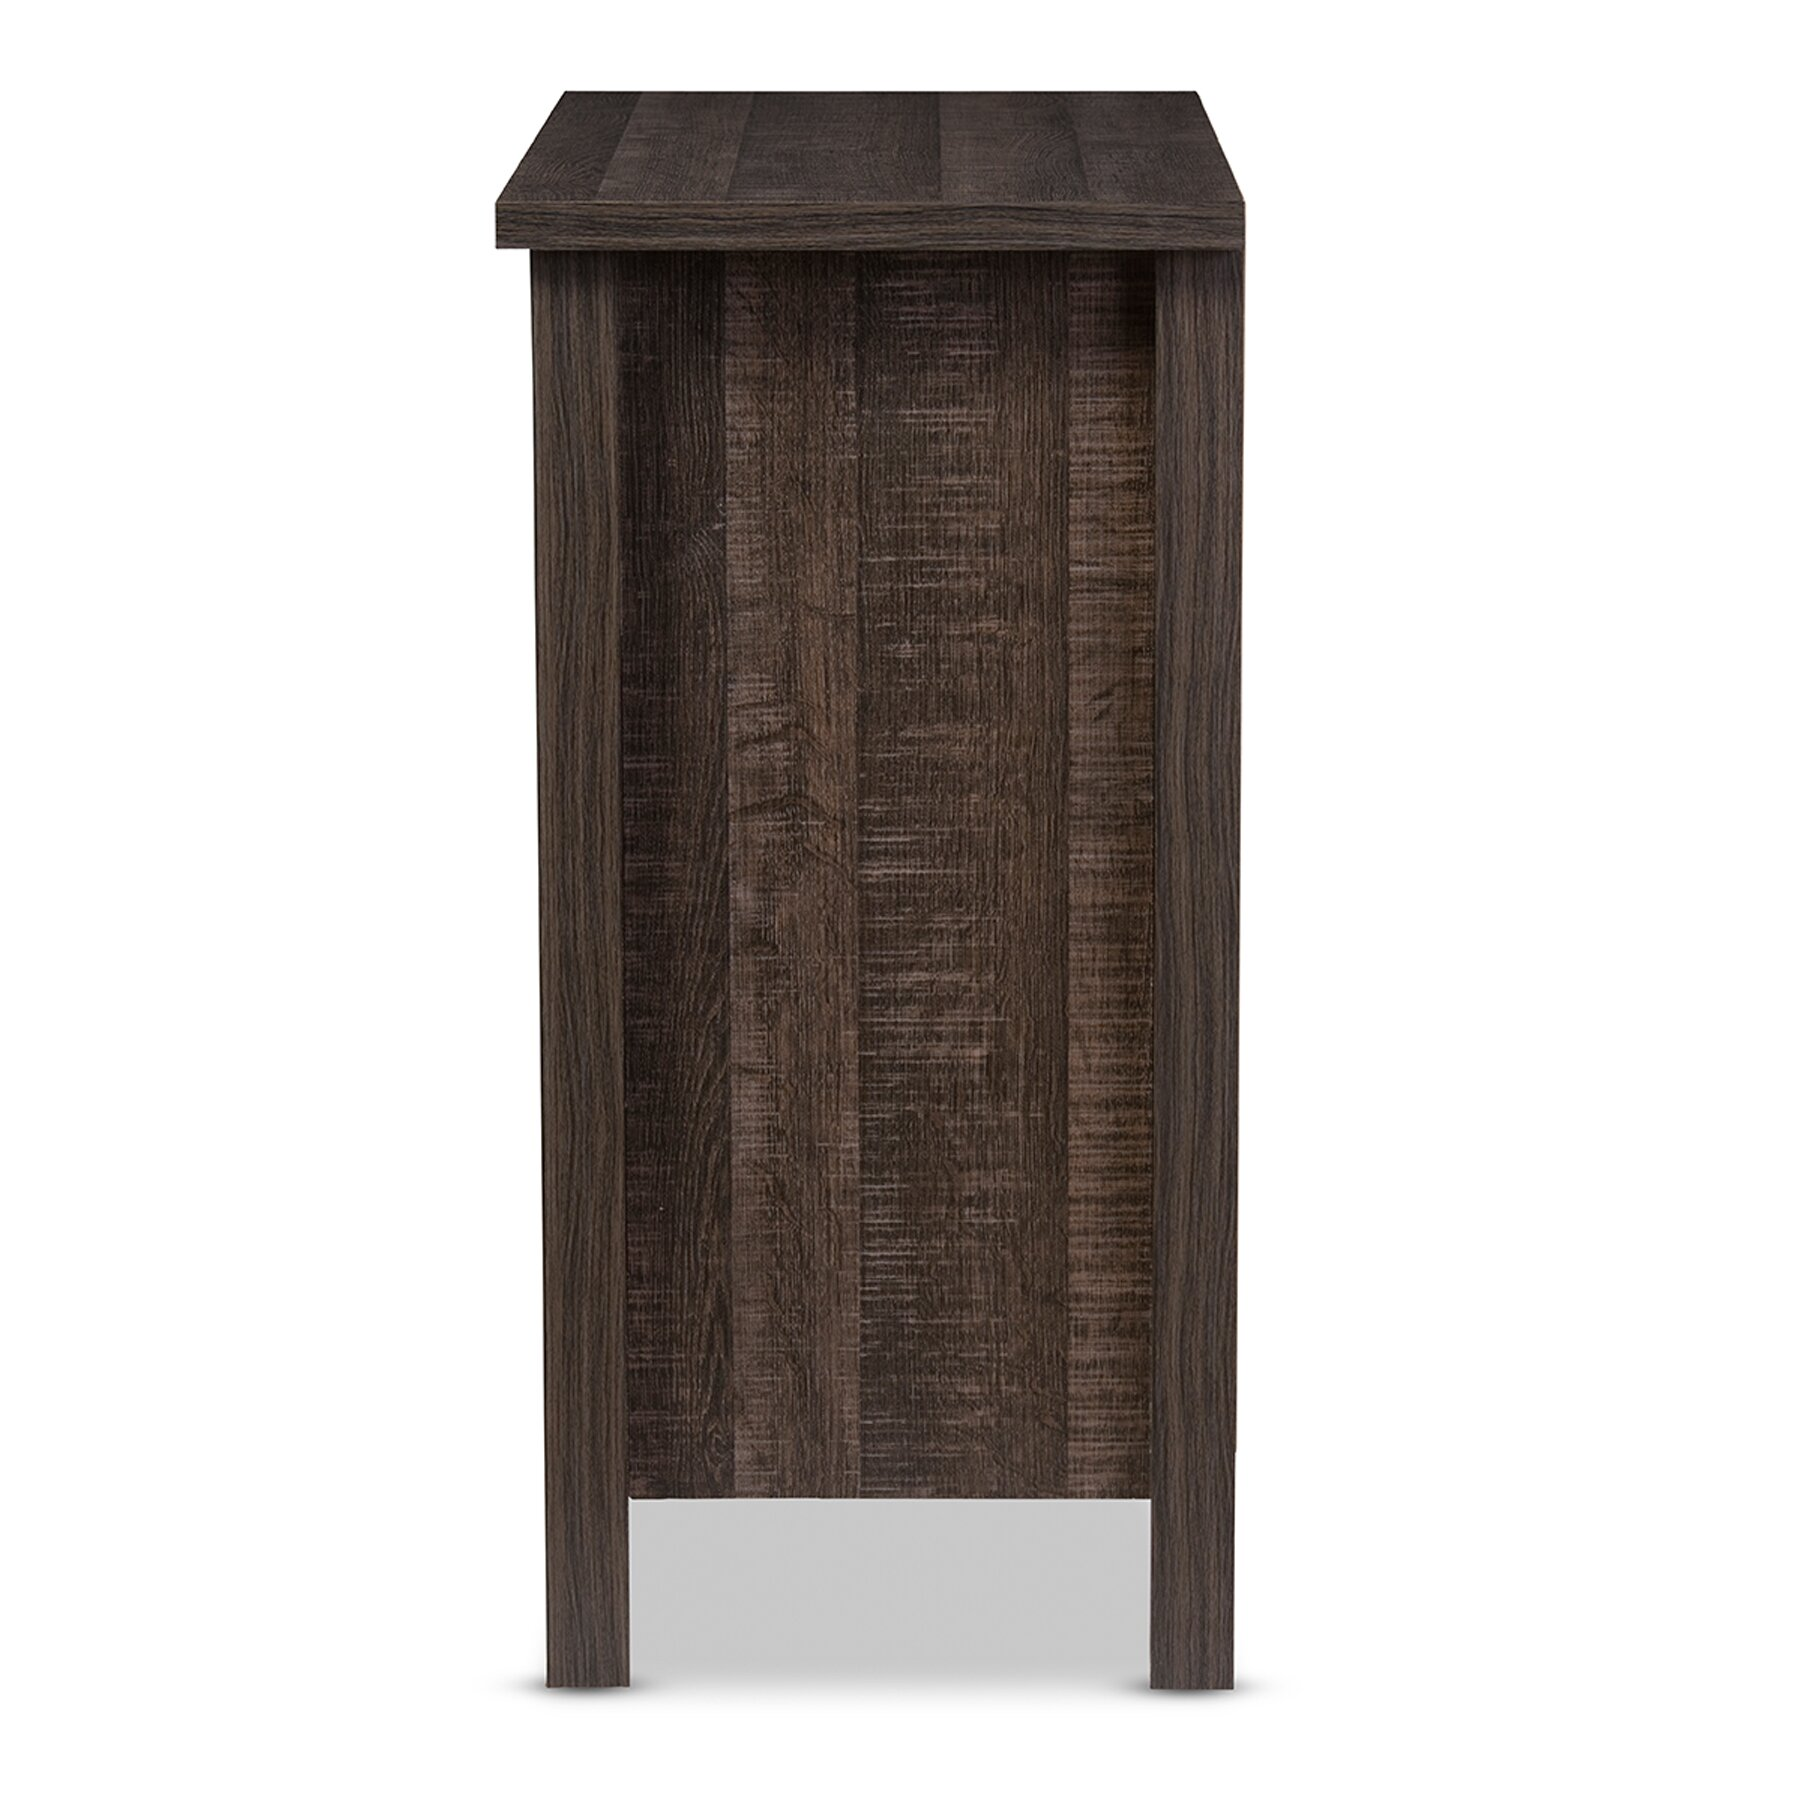 modular bathroom furniture rotating cabinet vibe. perfect modular bathroom furniture rotating cabinet vibe wholesale interiors baxton to inspiration decorating i